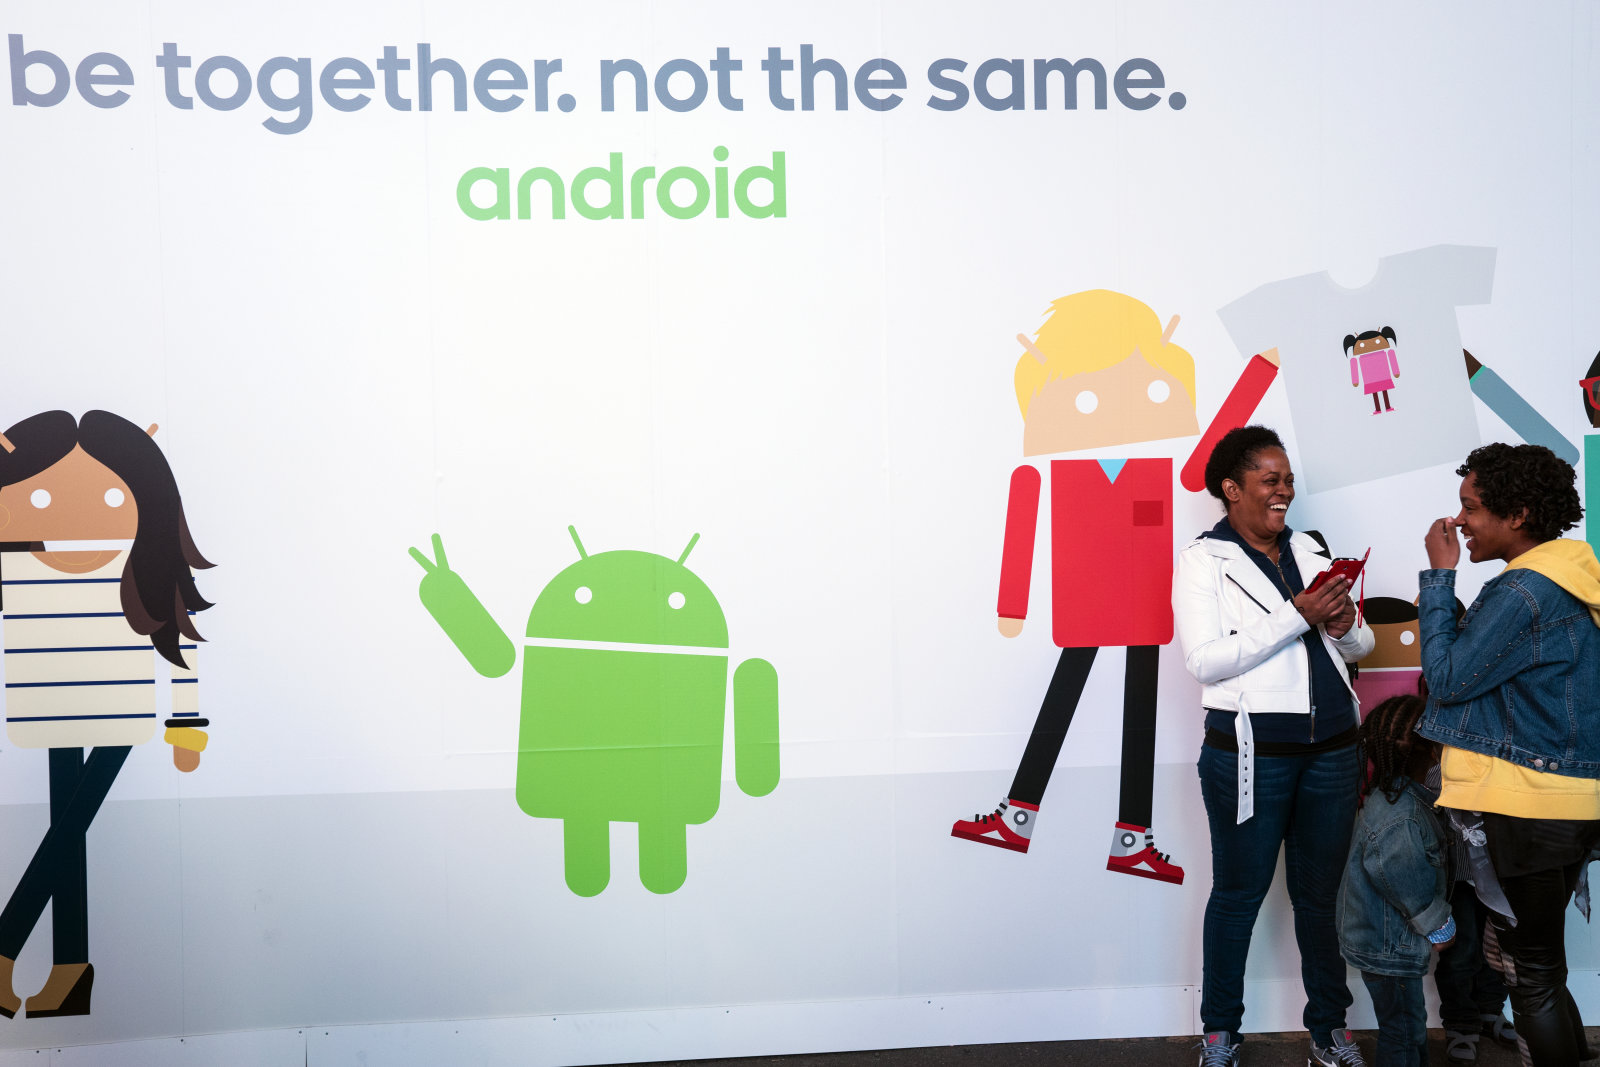 Google's biggest ad blitz for Android took place in Times Square. Google gave away t-shirts and postcards for free to thousands of users. Using Google's Androidify app on iOS and Android smartphones and tablets, users created their own Android characters that were printed on t-shirts and postcards. Google employees helped users and printed the cards and t-shirts to give away, on site. (Photo by ANDREW HOLBROOKE/Corbis via Getty Images)